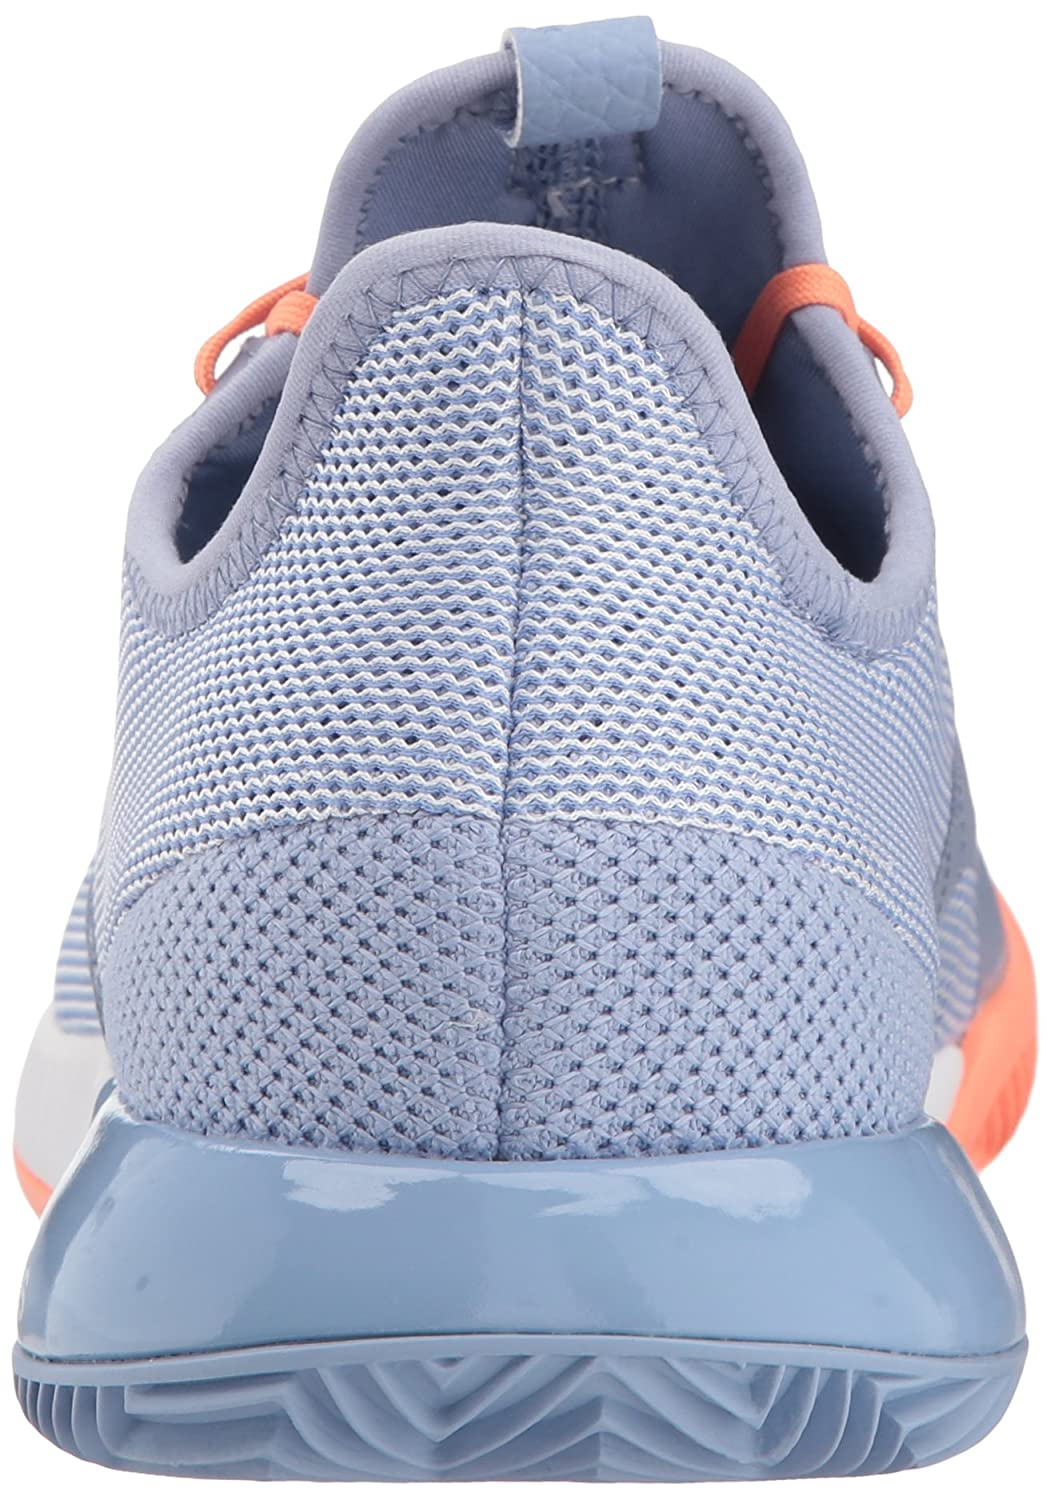 adidas Women's Adizero Defiant Bounce W Tennis Shoe B0725QBSJH 8.5 B(M) US|Chalk Blue/White/Chalk Coral